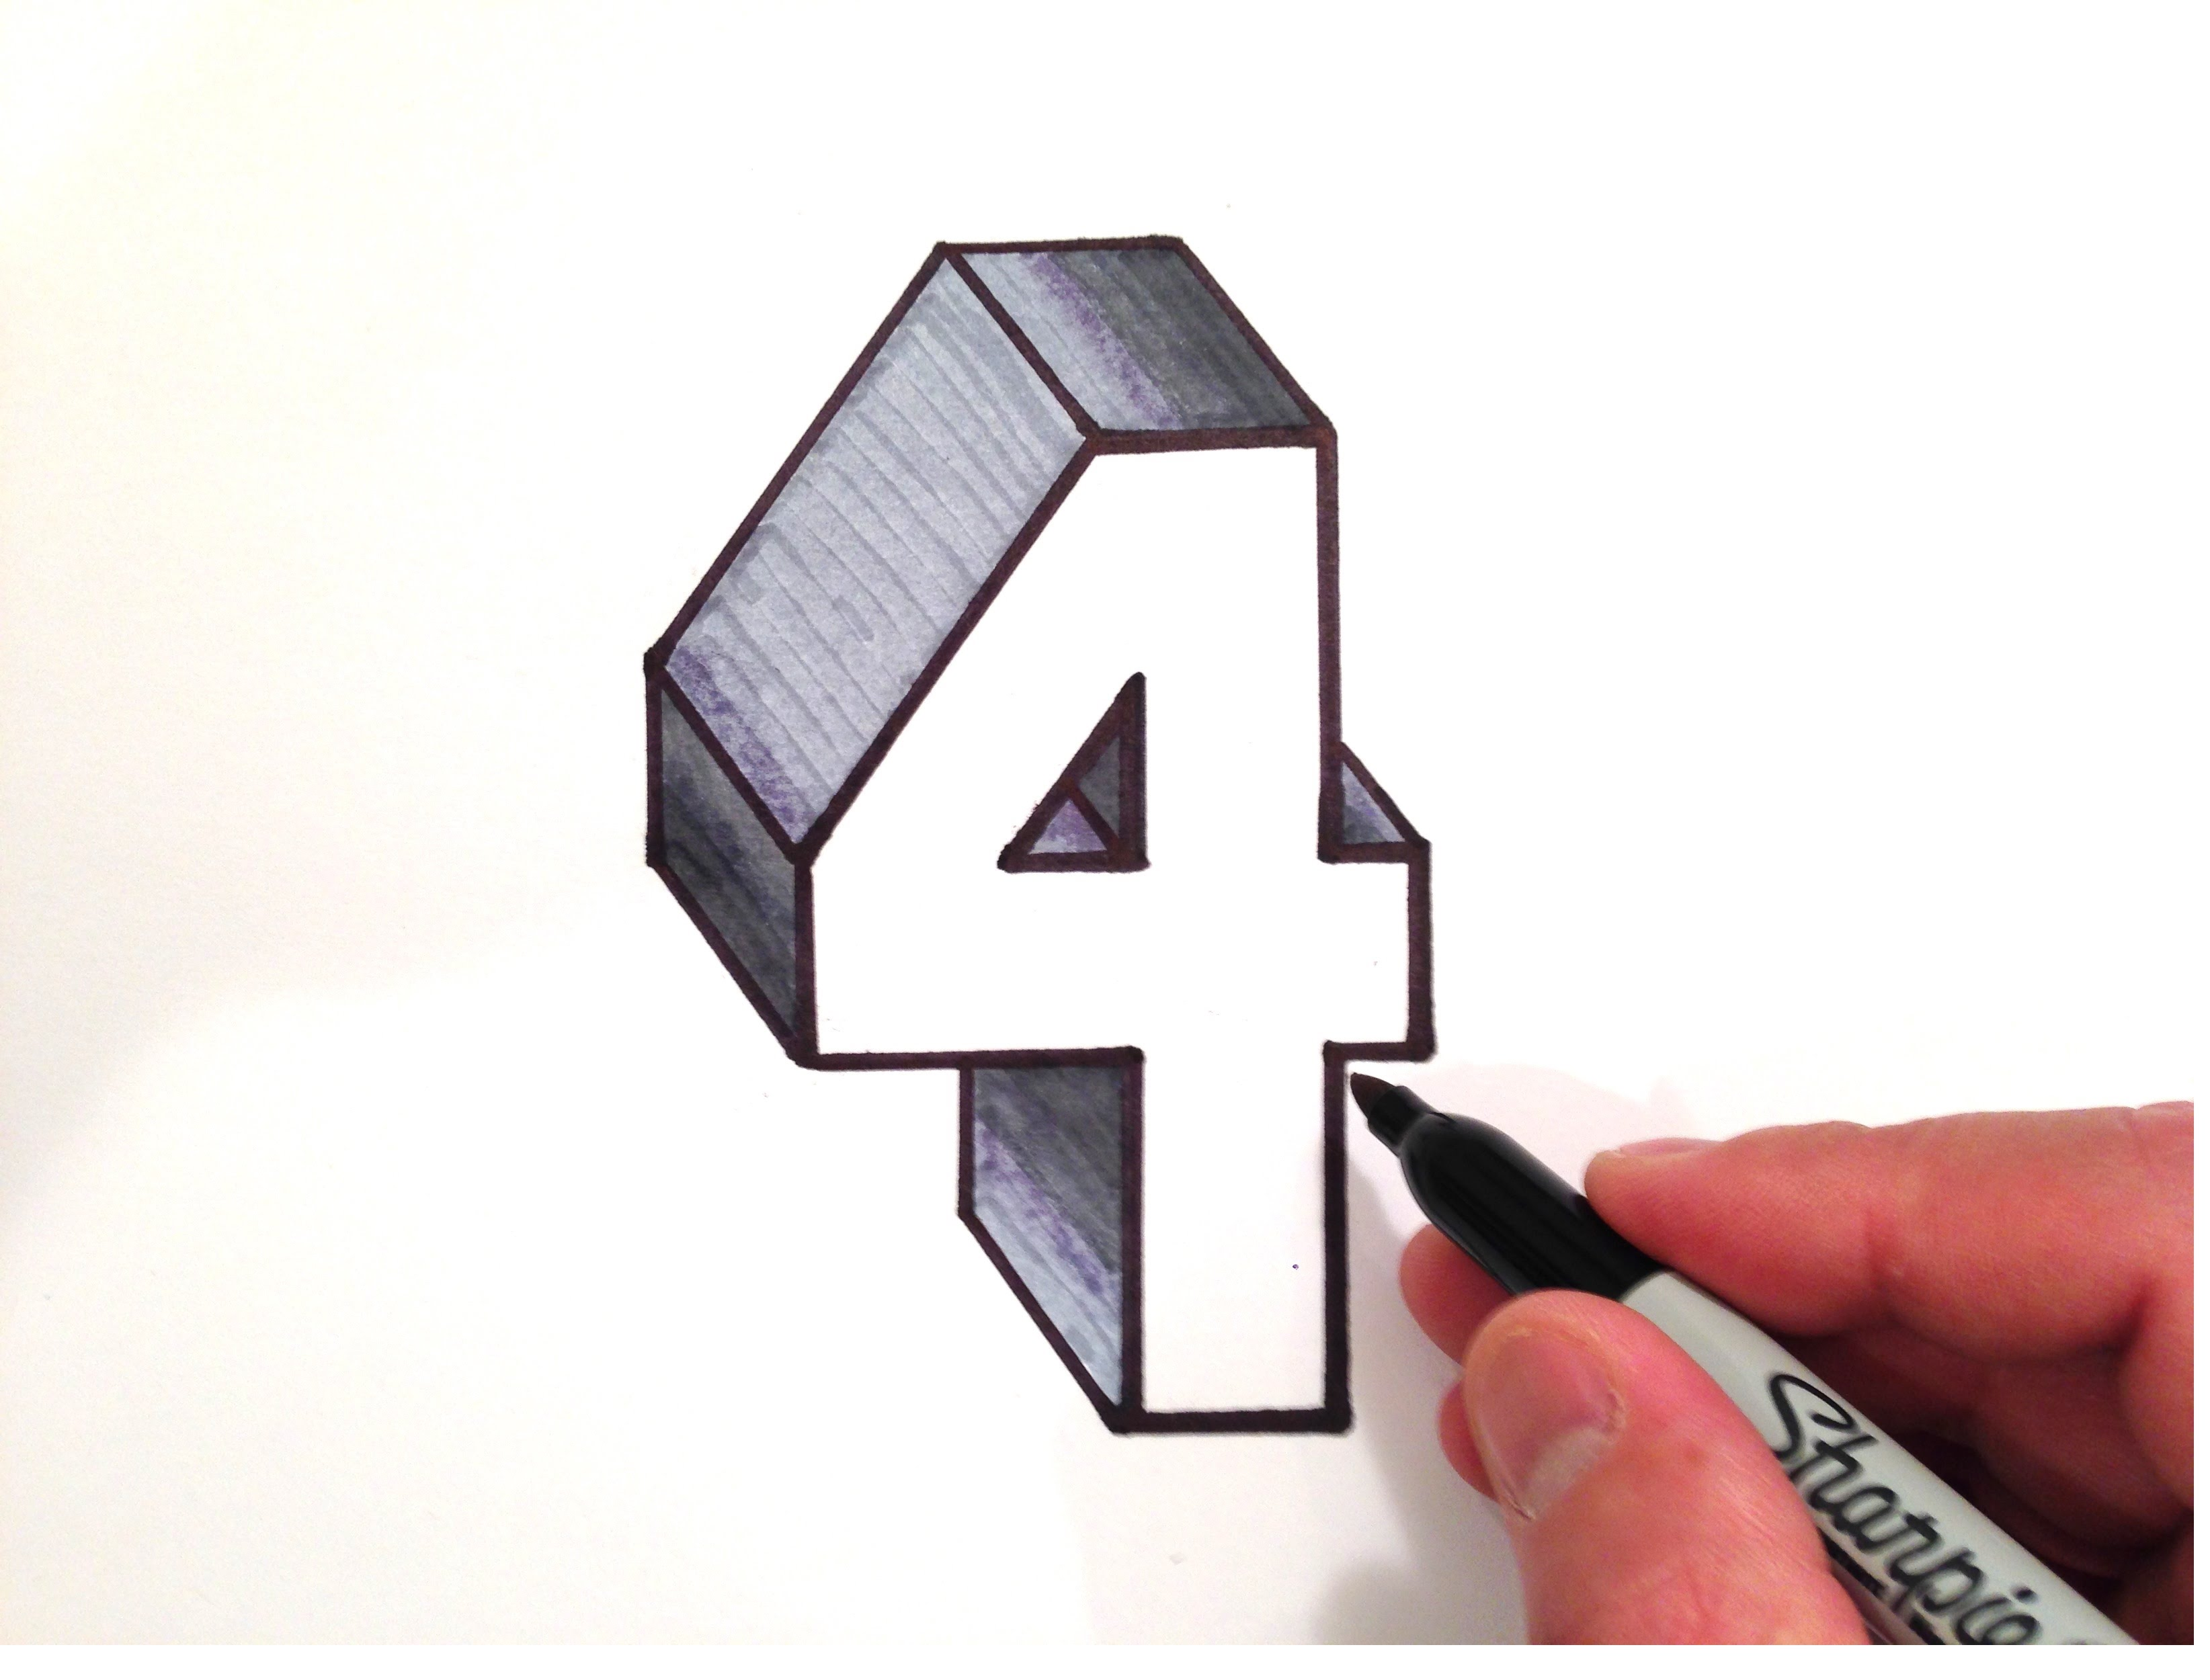 3288x2500 How To Draw The Number 4 In 3d